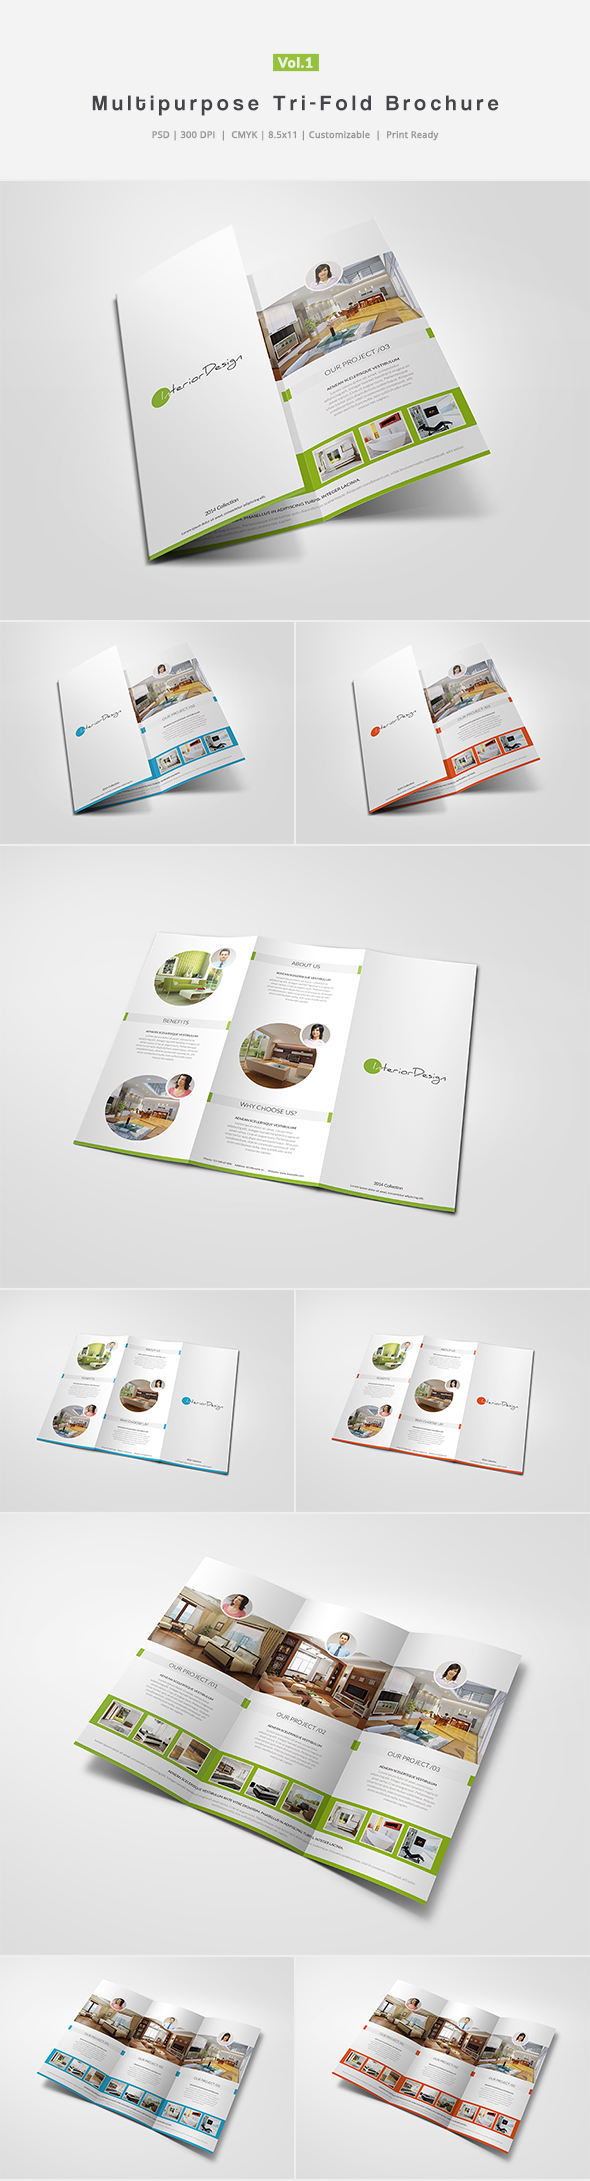 Multipurpose Tri-Fold Brochure Vol.1 by shapshapy on ...